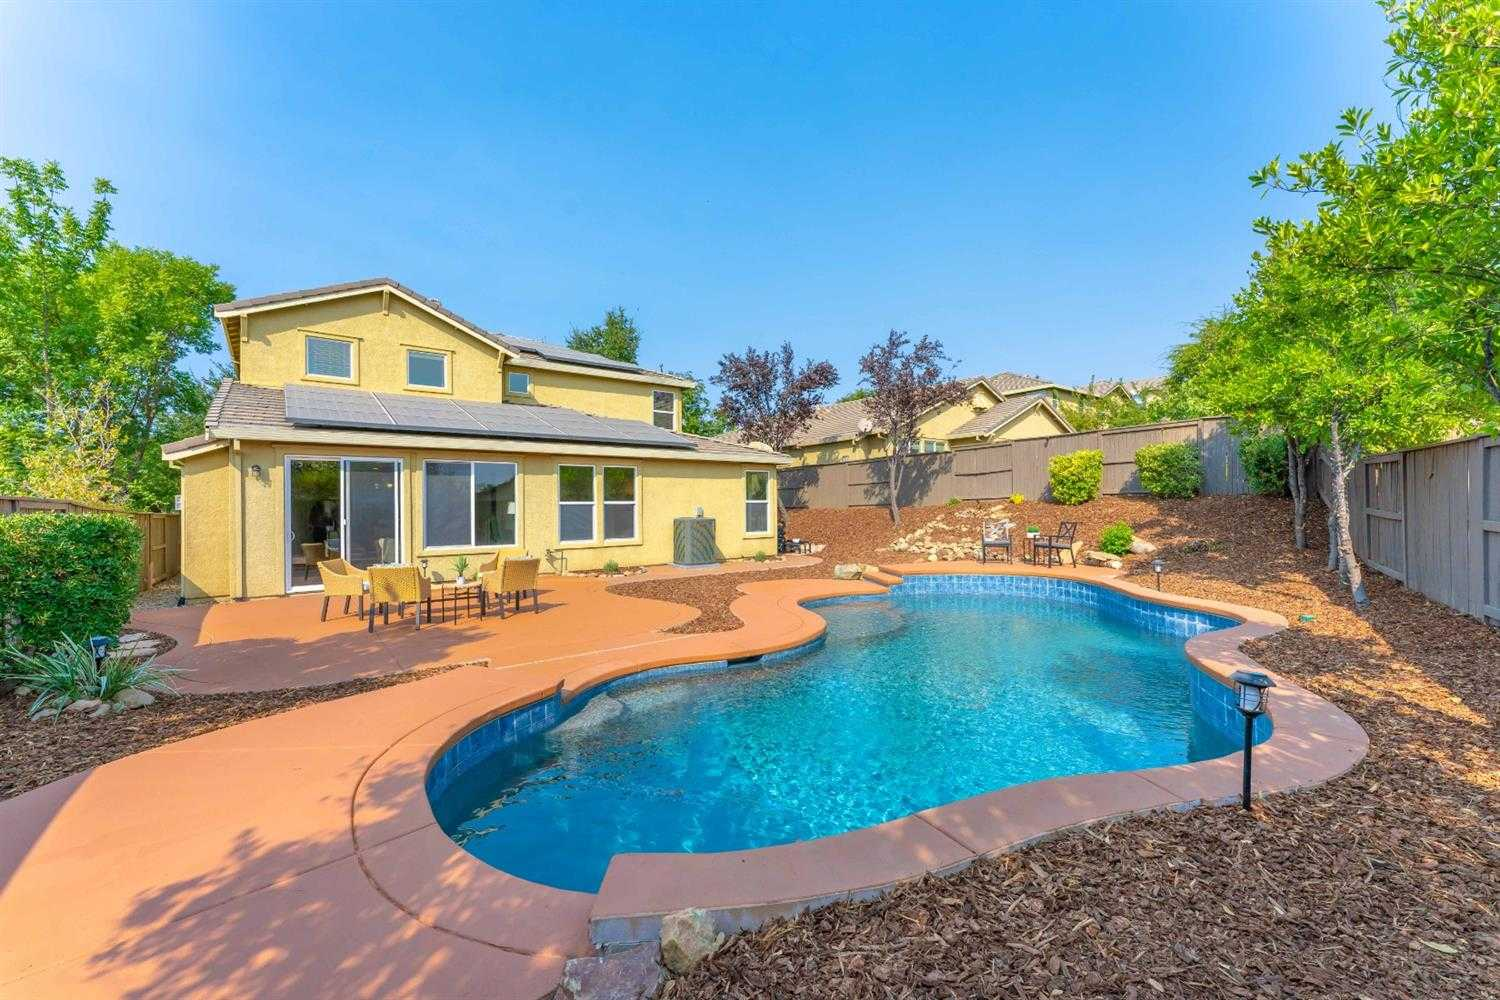 $699,000 - 5Br/4Ba -  for Sale in Serrano, El Dorado Hills